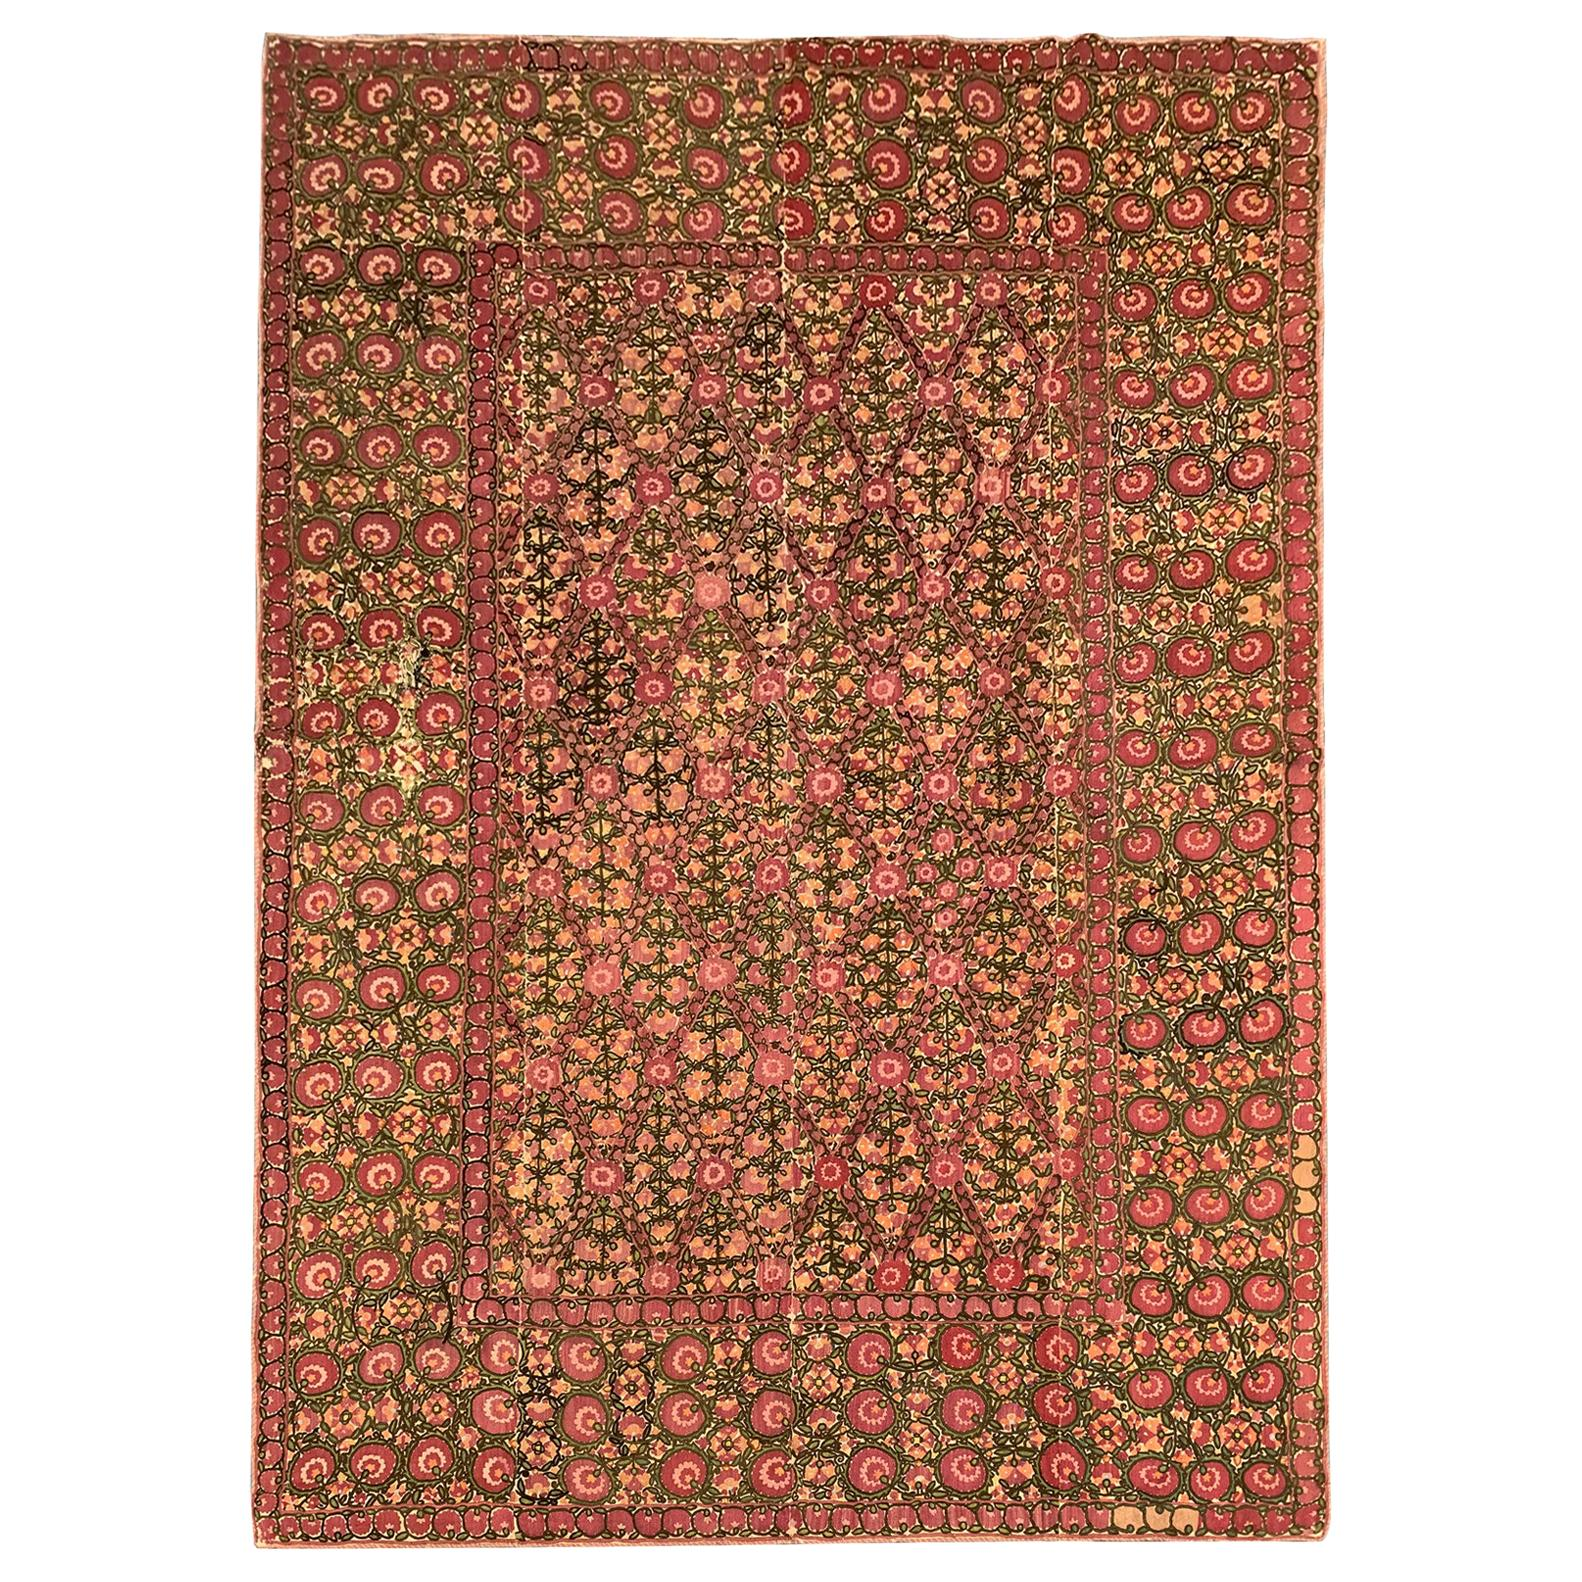 Fine Antique Rugs Handmade Bukhara Suzani Floral Embroidered Textile